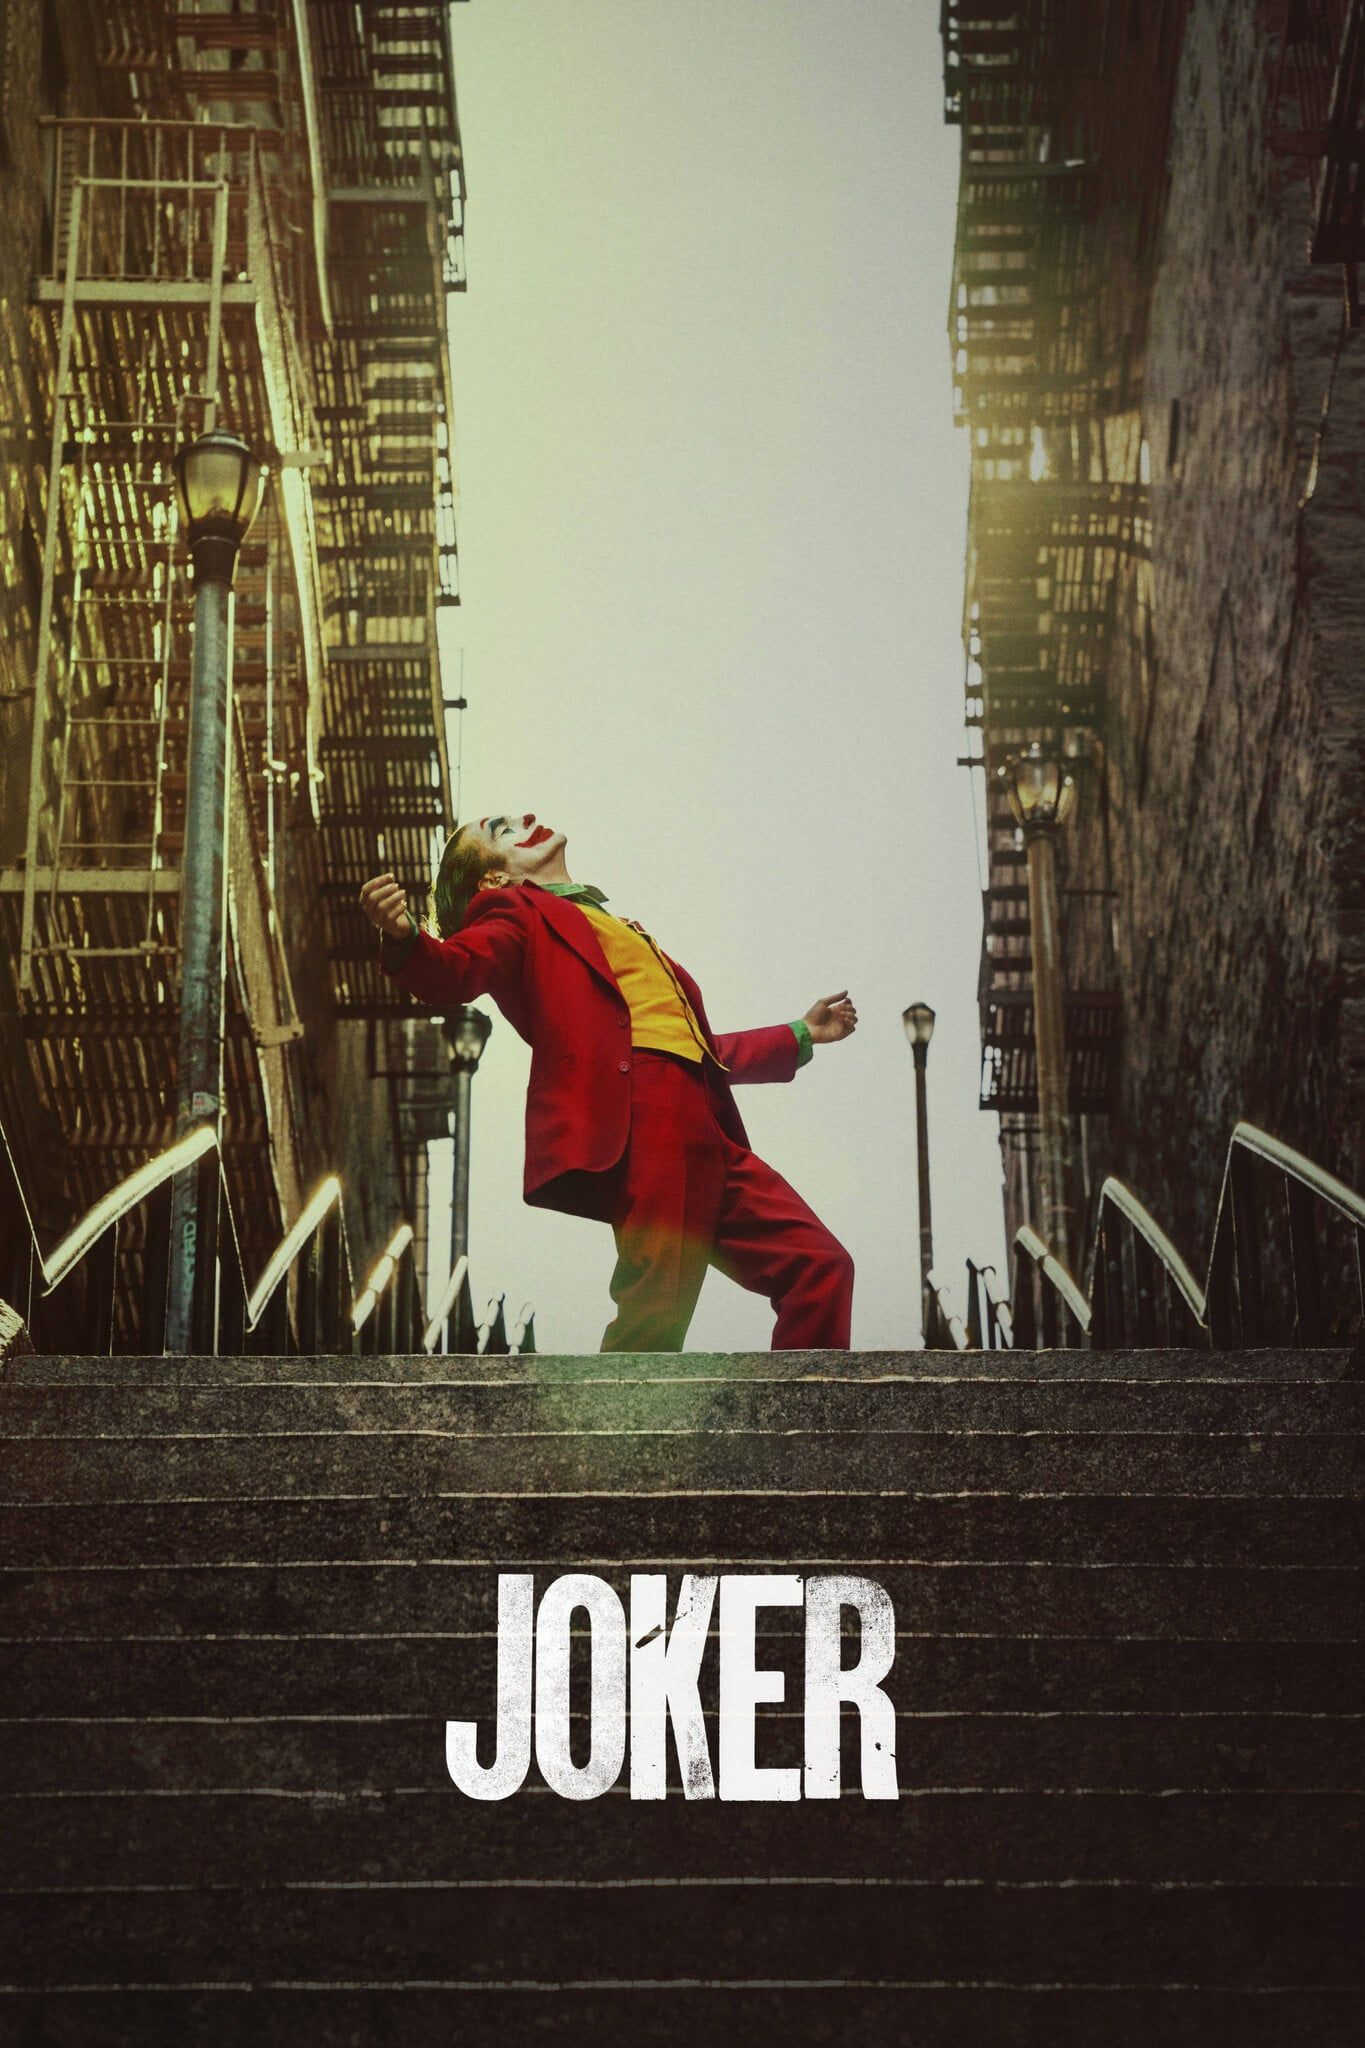 Joker Pelicula Completa En Espanol Latino Gnula Joker Full Movie Joker Film Joker Poster